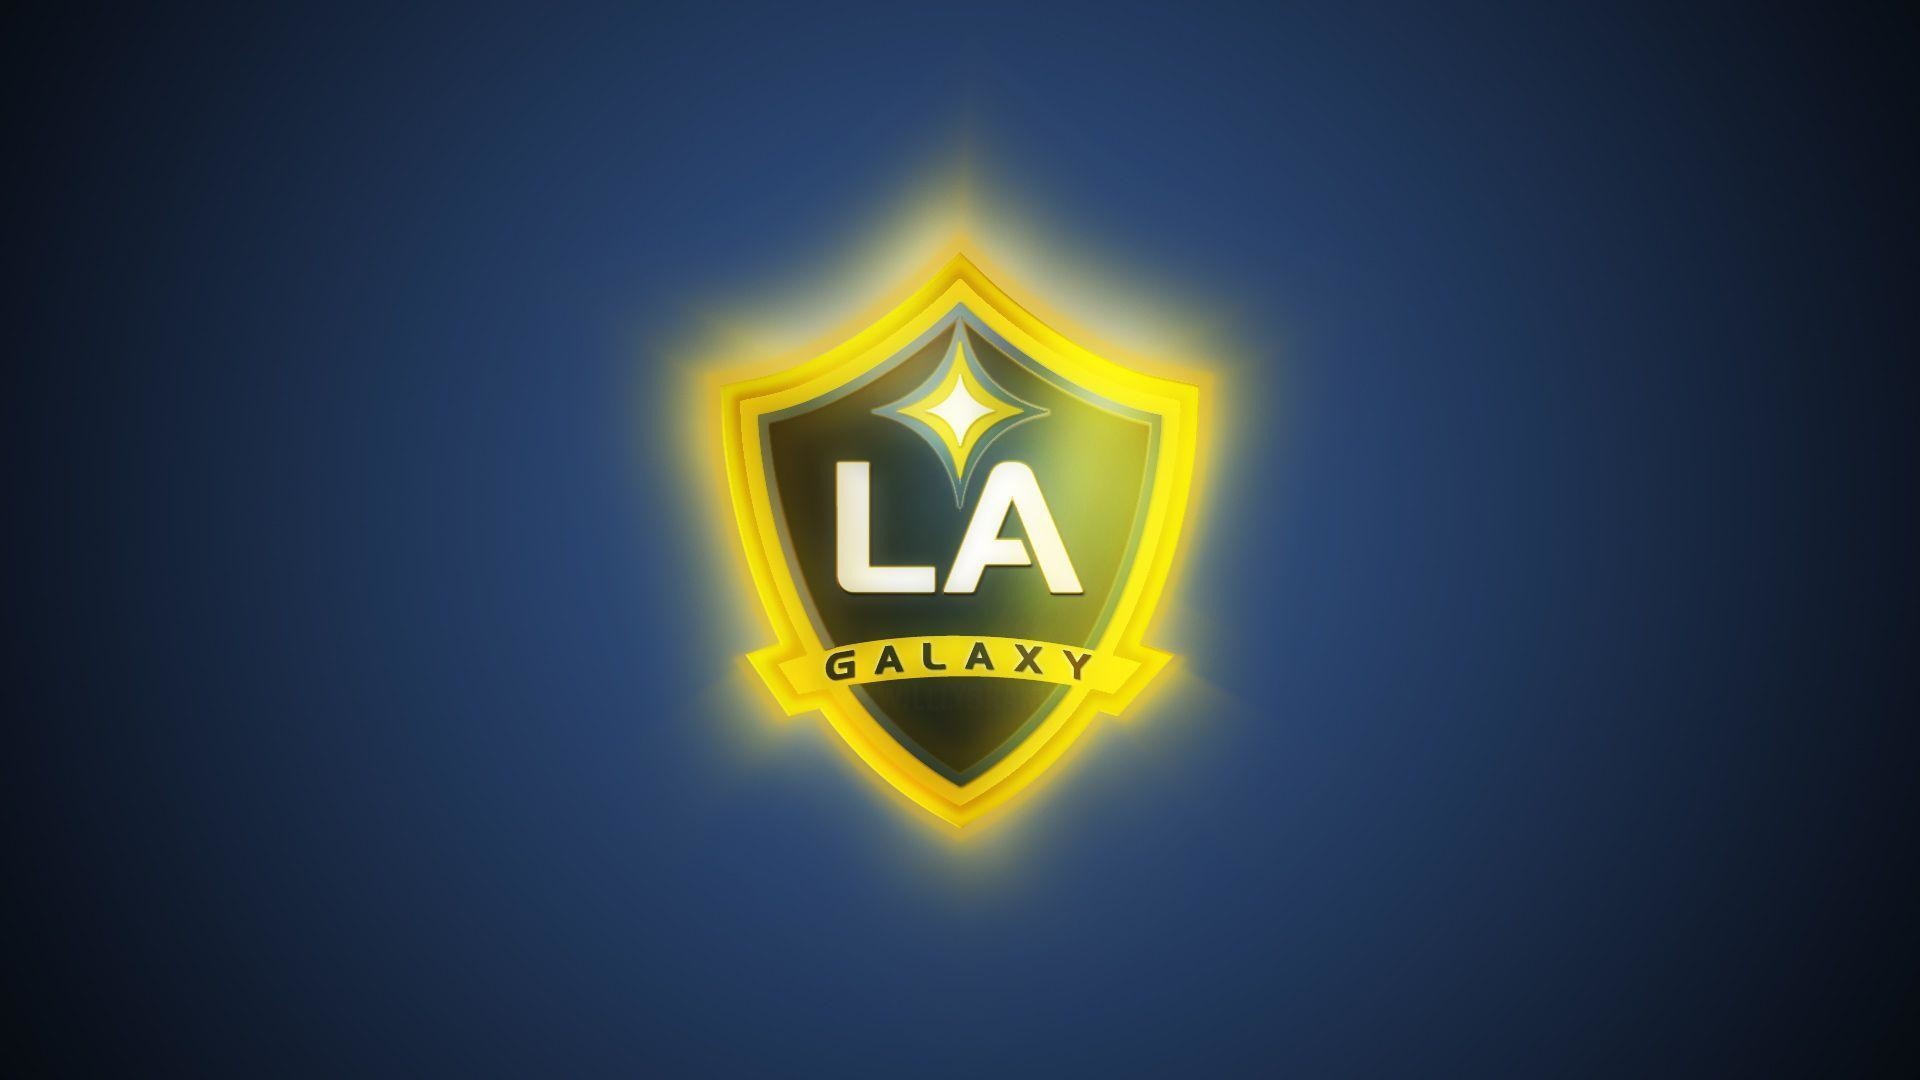 Res: 1920x1080, LA Galaxy Wallpaper - WallpaperSafari